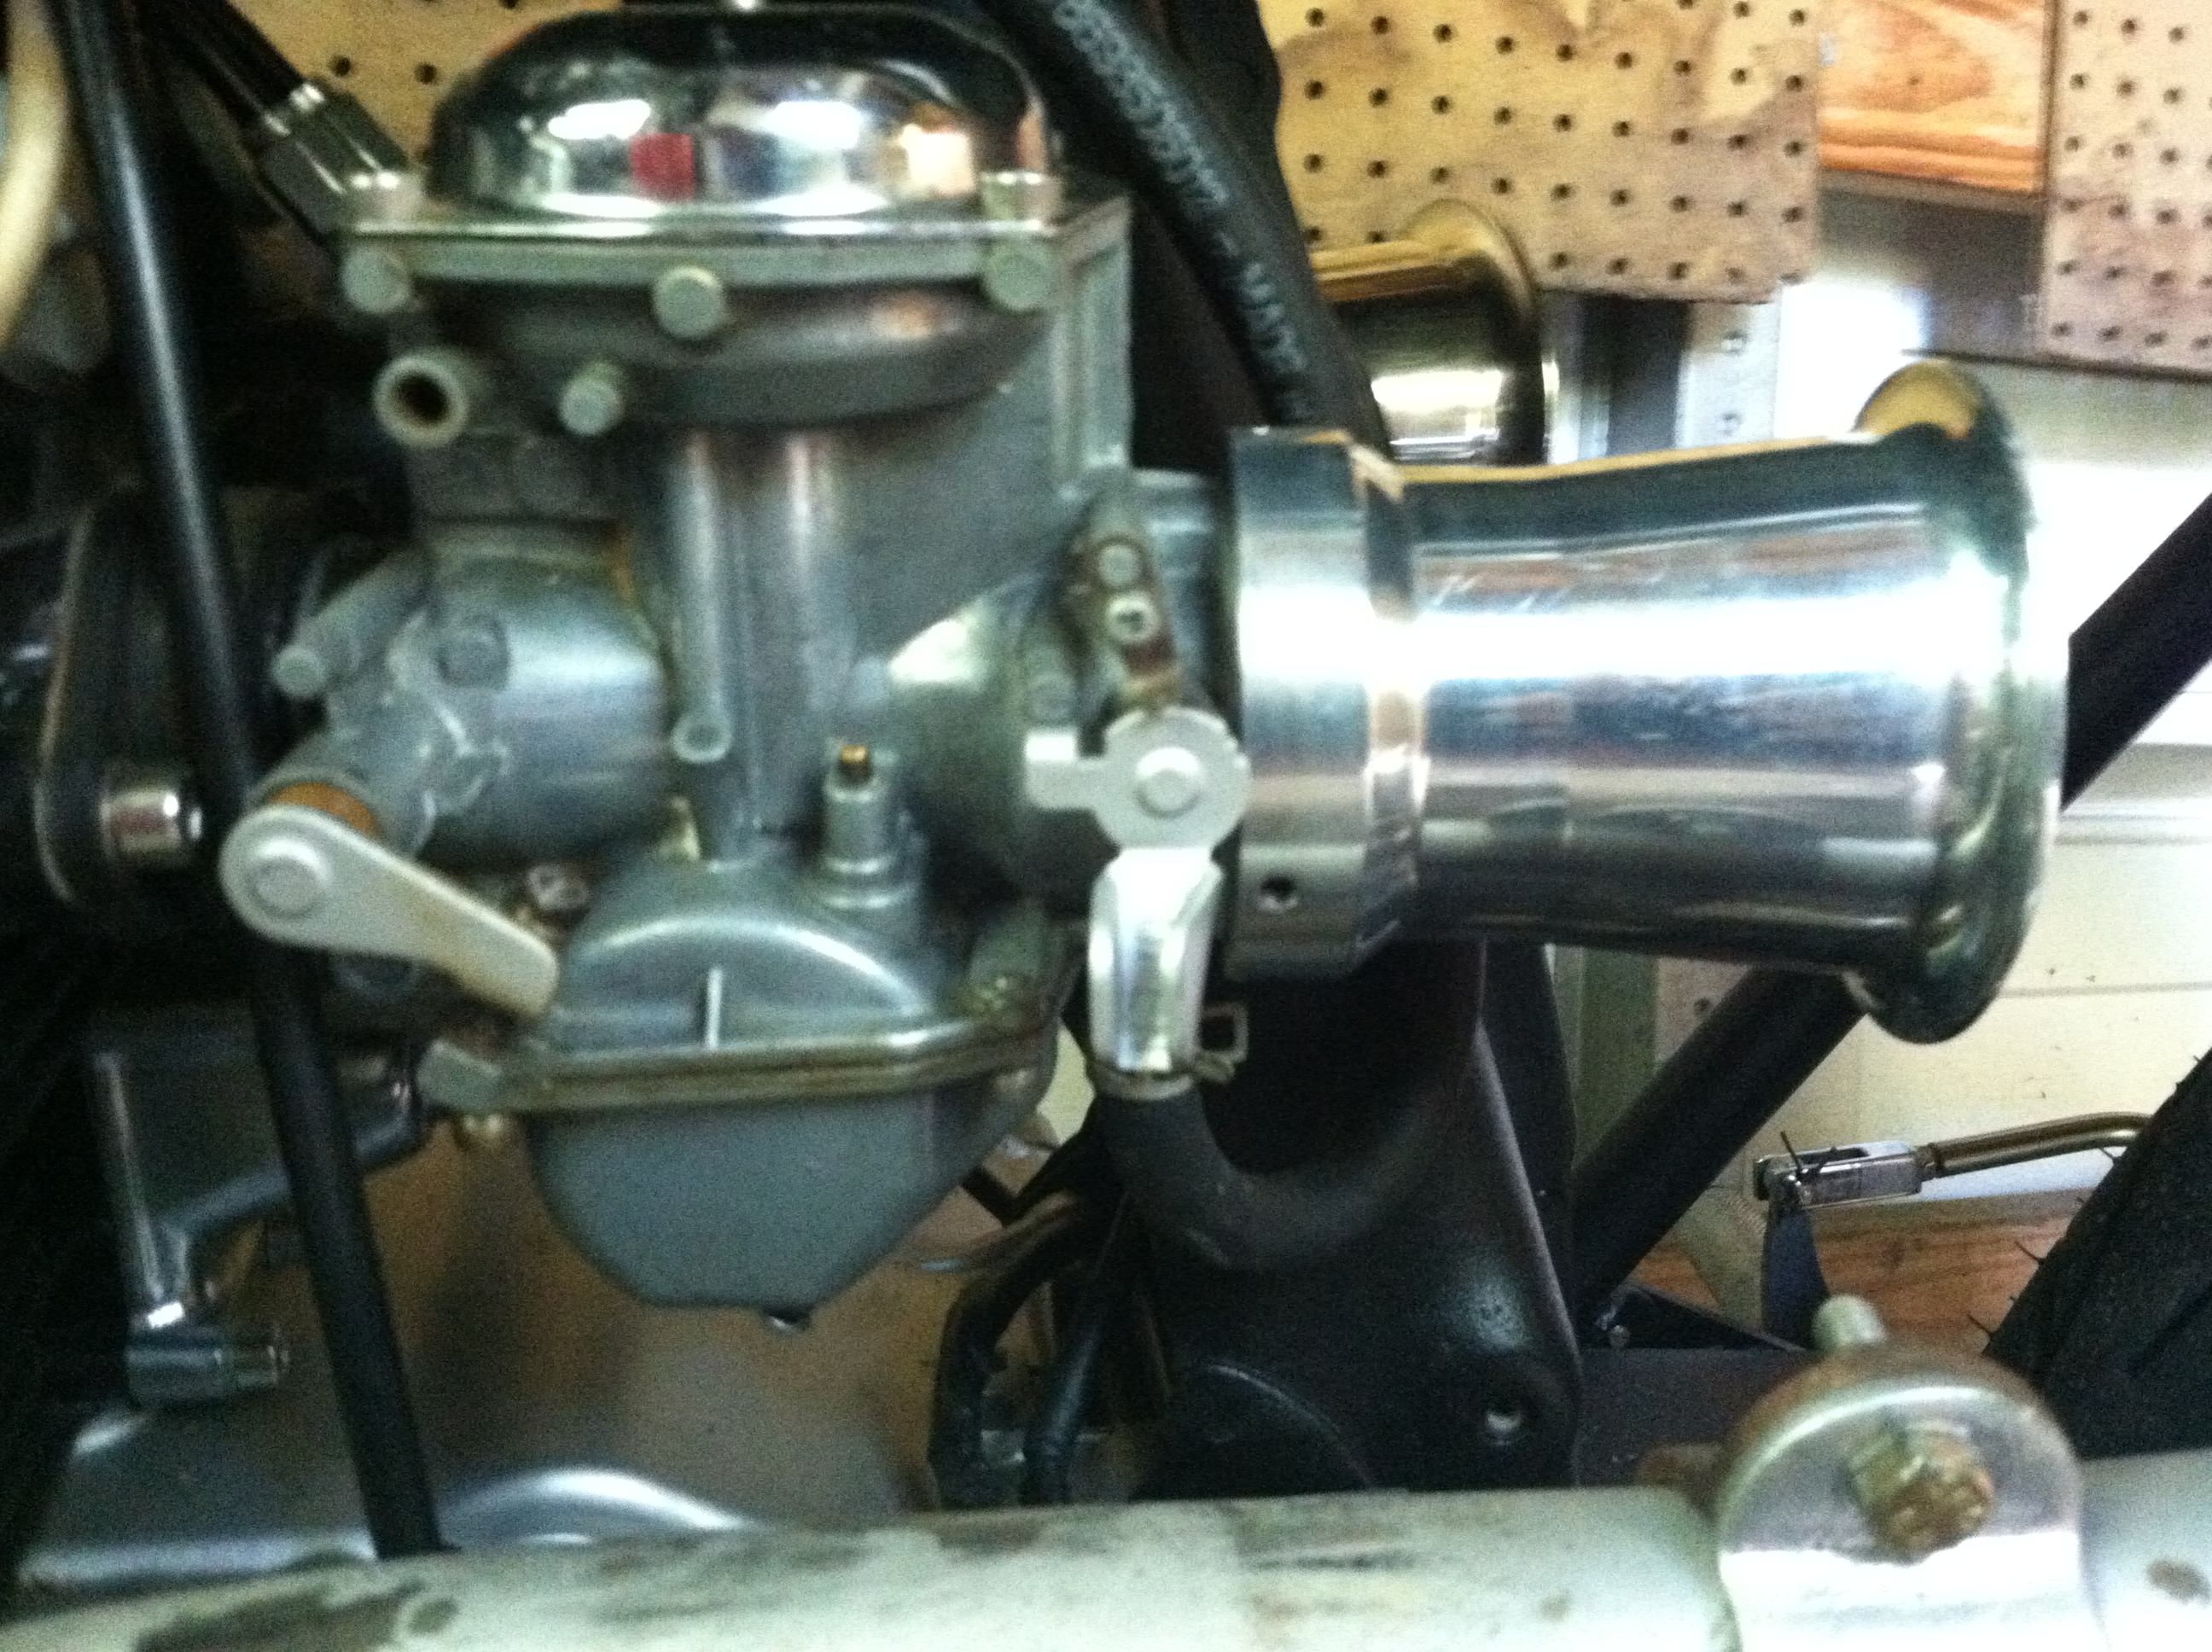 Tuning A Cl350 After Made Into A Cafe Racer